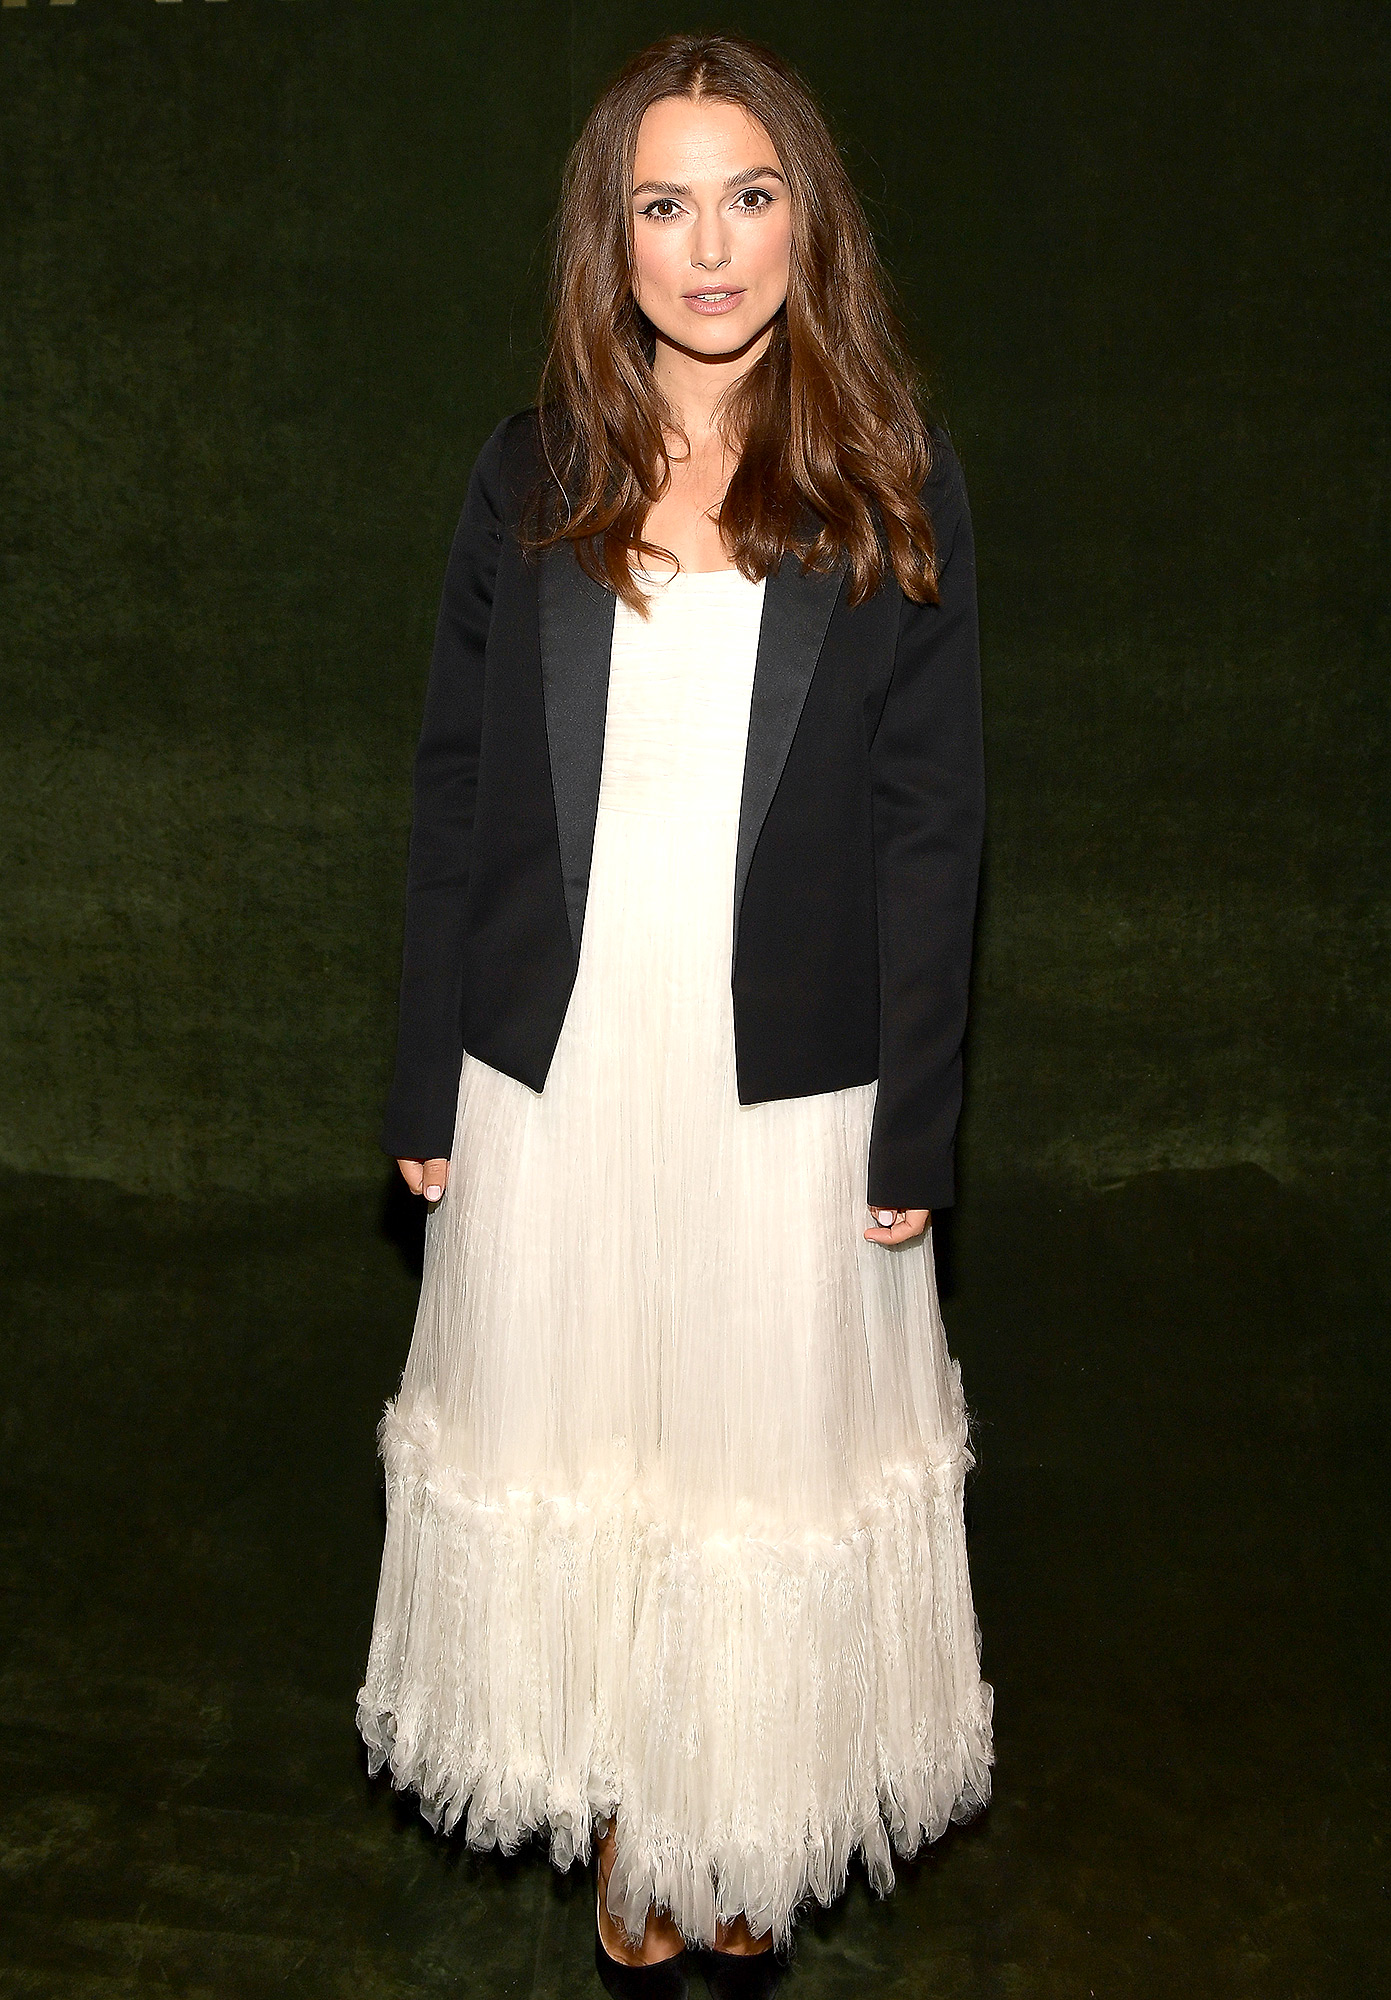 CHANEL & Variety Honour Keira Knightley at the Inaugural Female Filmmaker Dinner